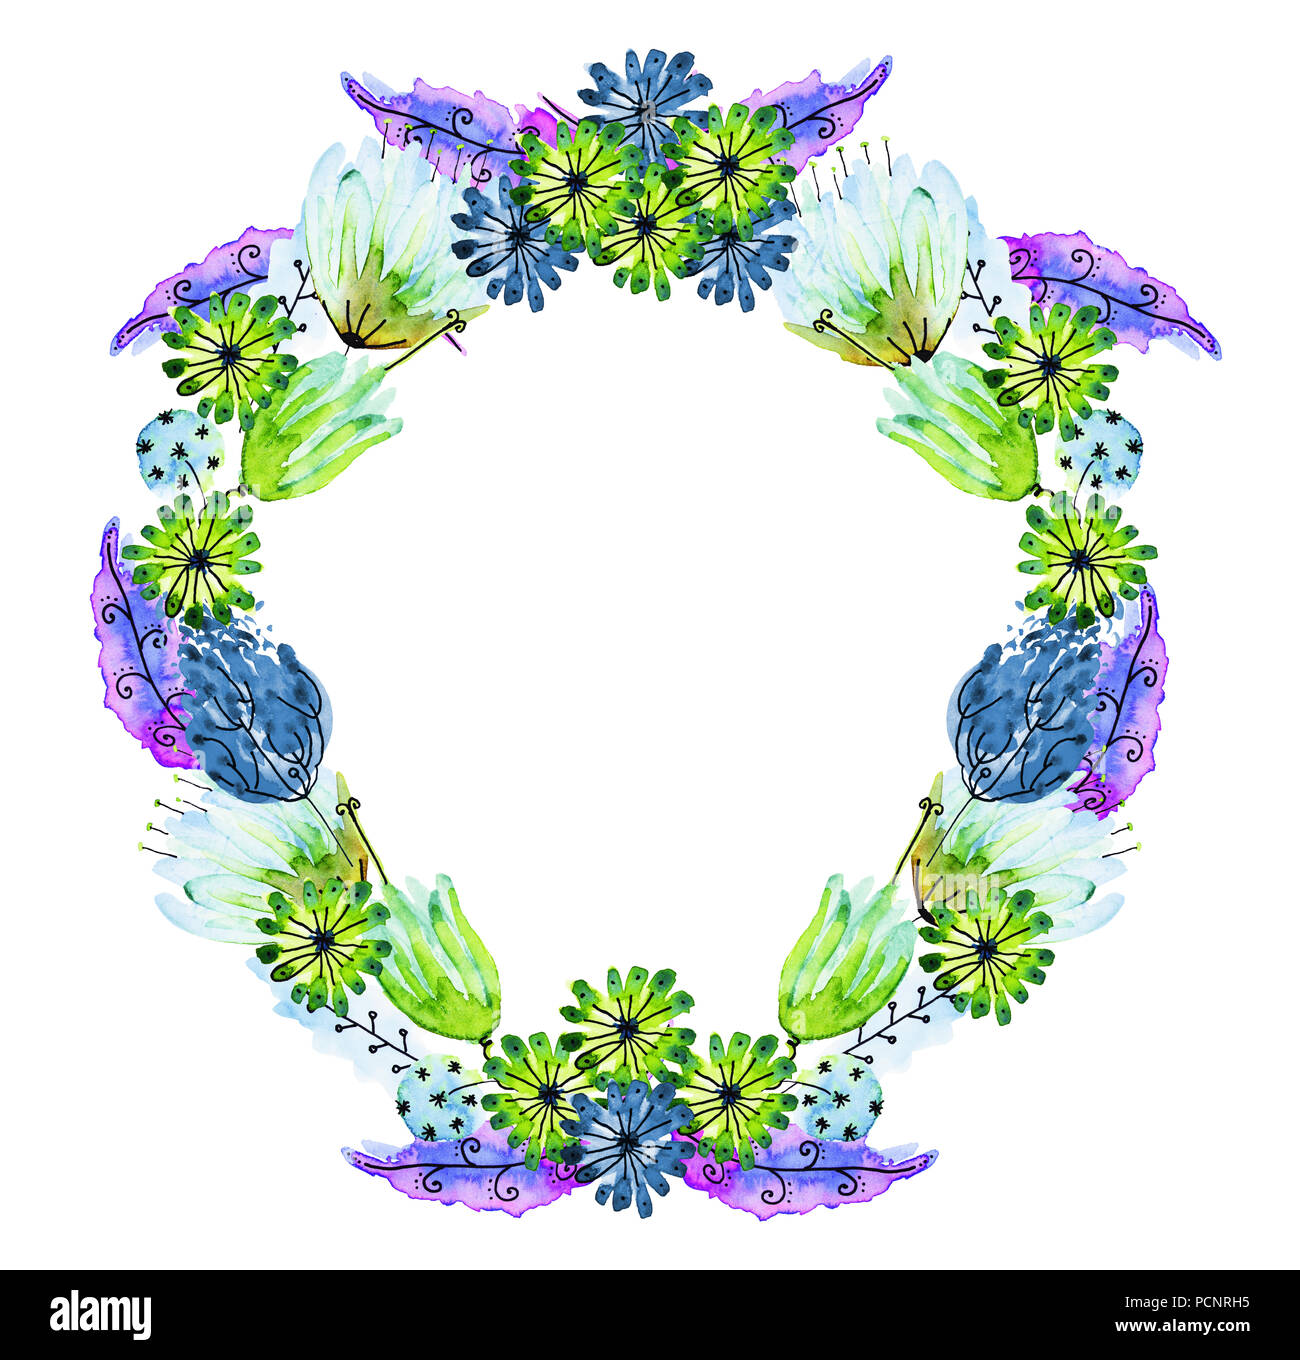 Watercolor And Ink Illustration Of Wreath Multicolor Flower Garland